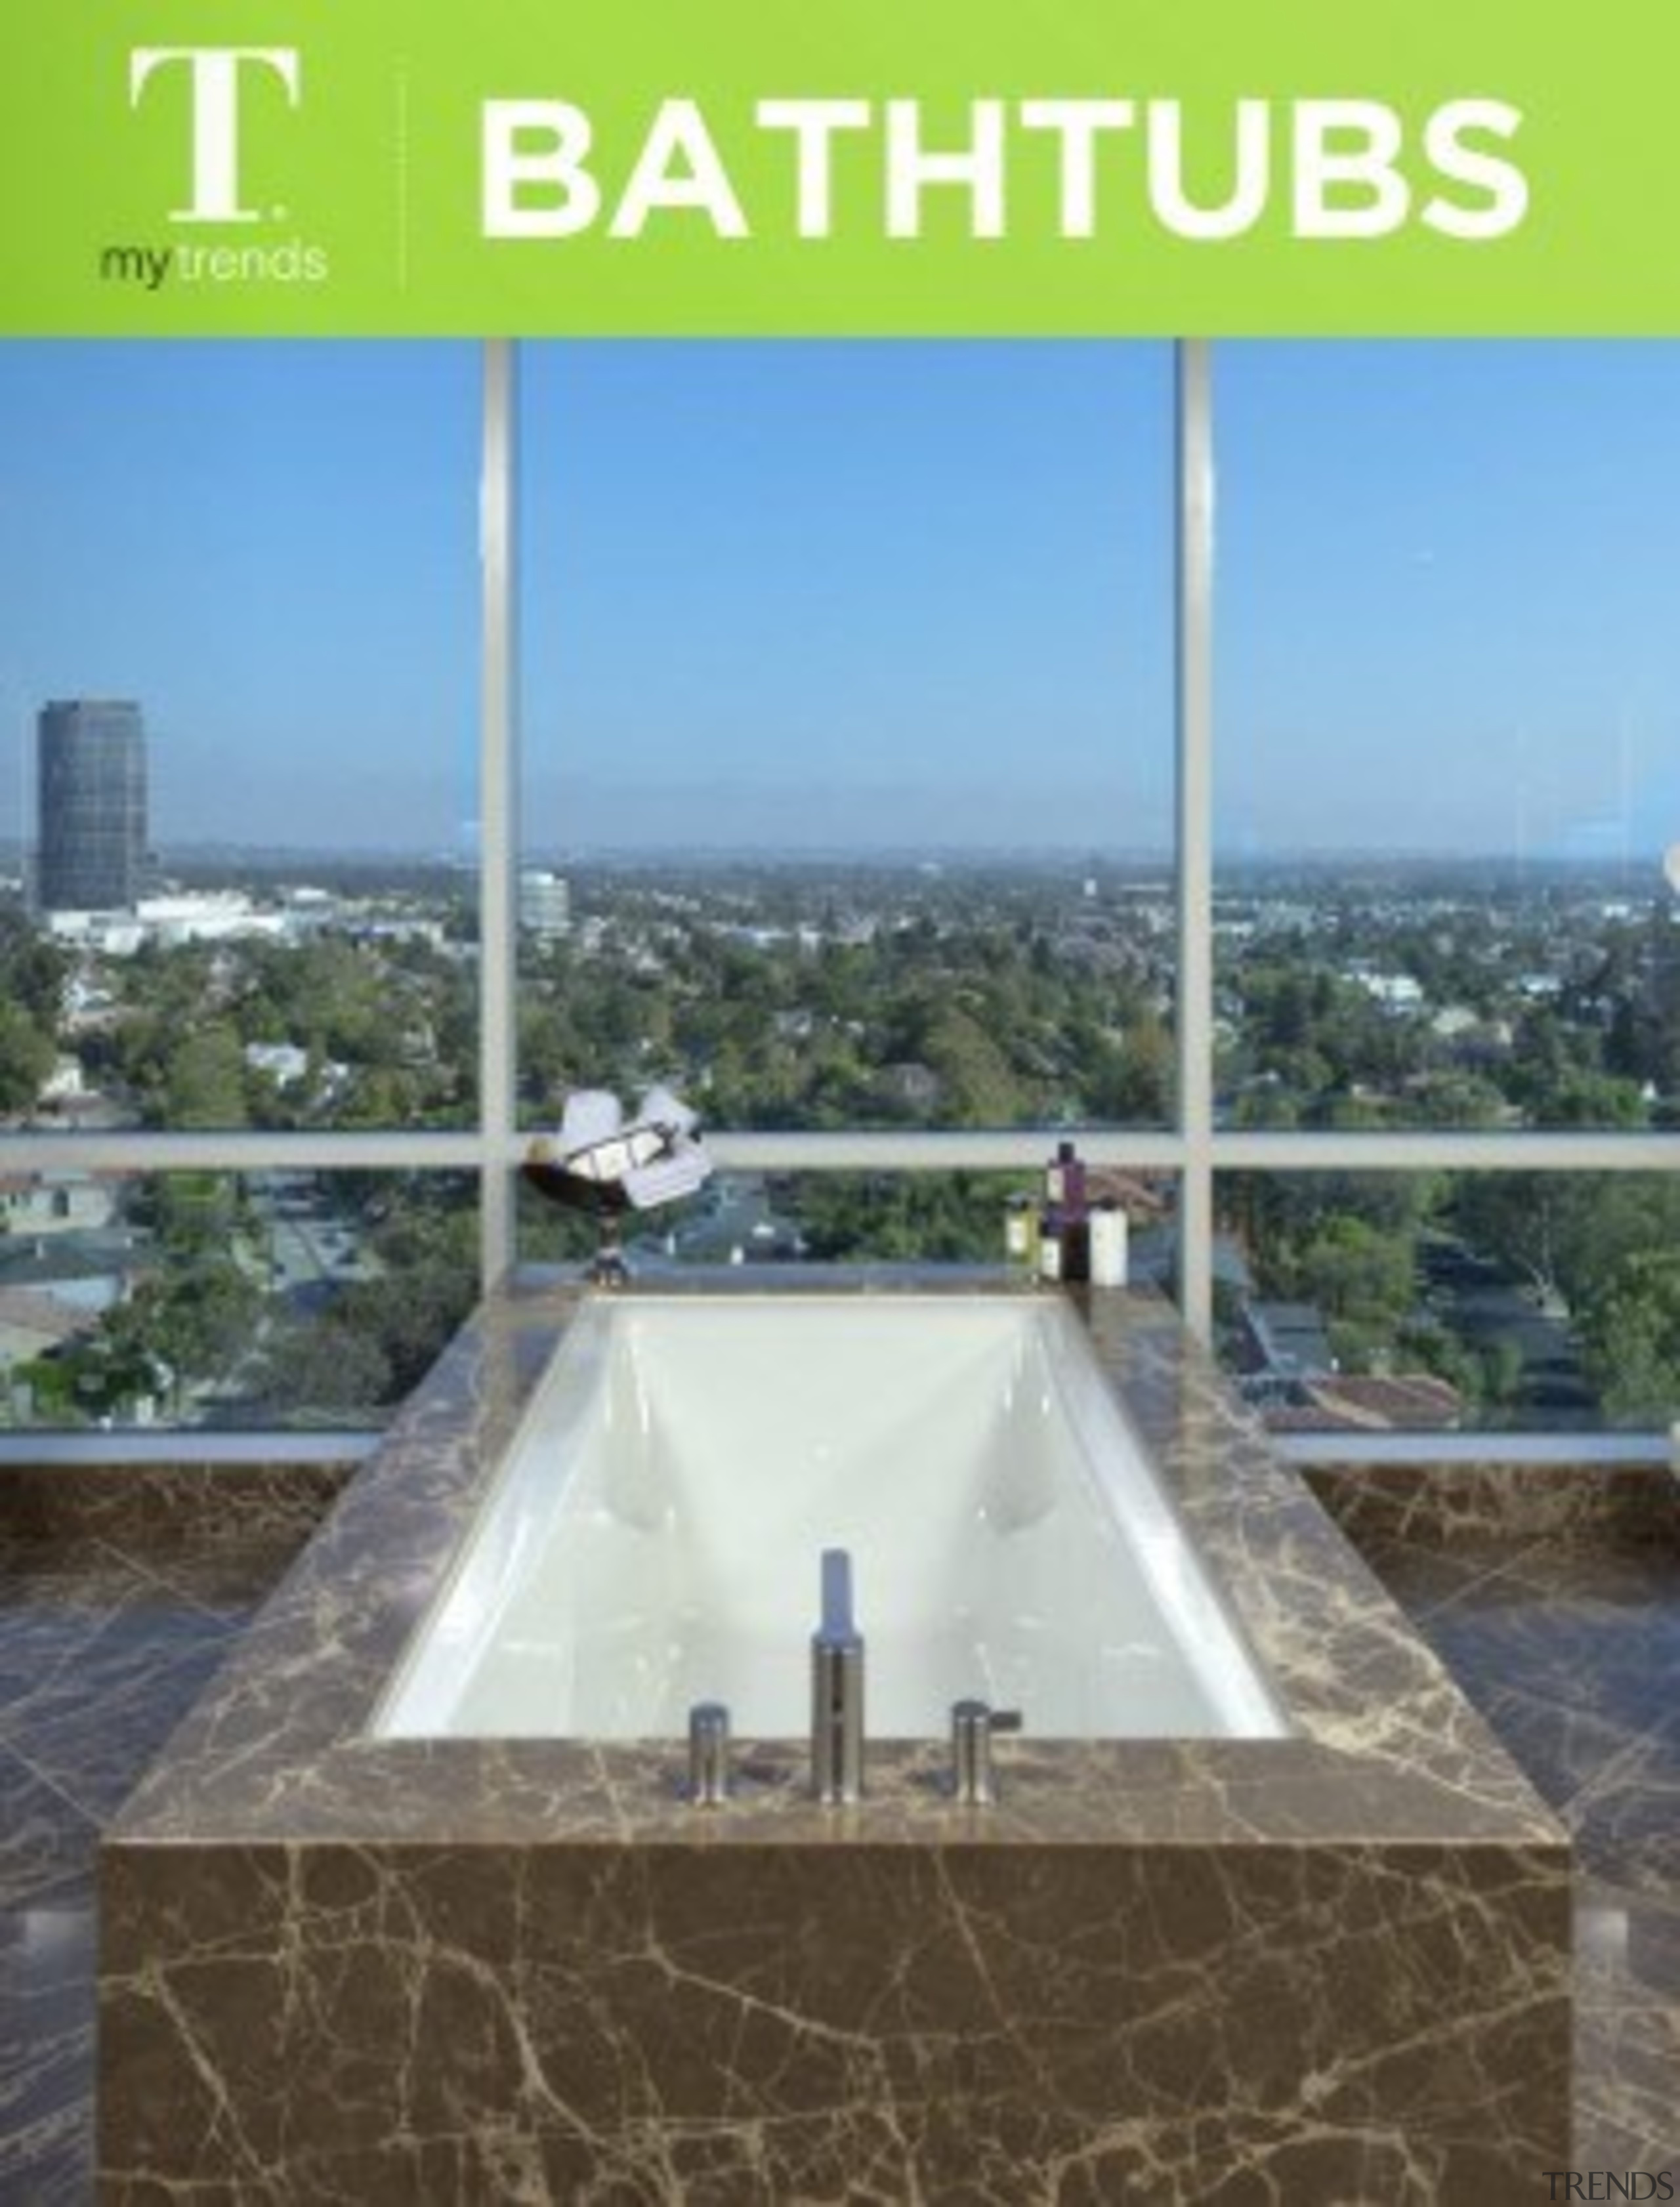 Bathtubs - architecture | real estate | teal architecture, real estate, teal